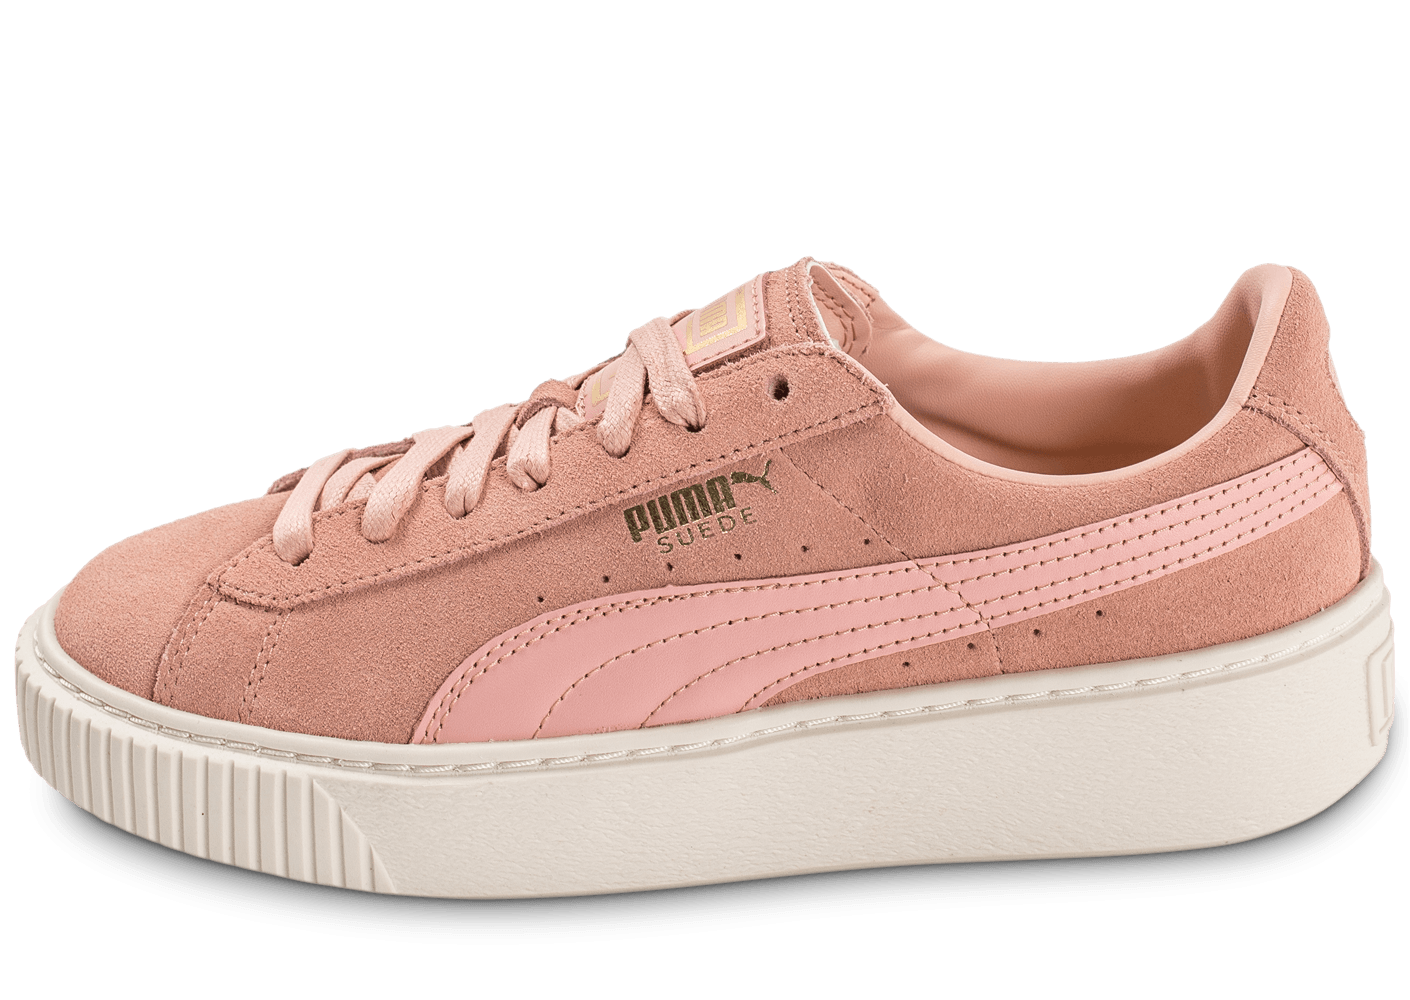 puma suede rose pale plateform